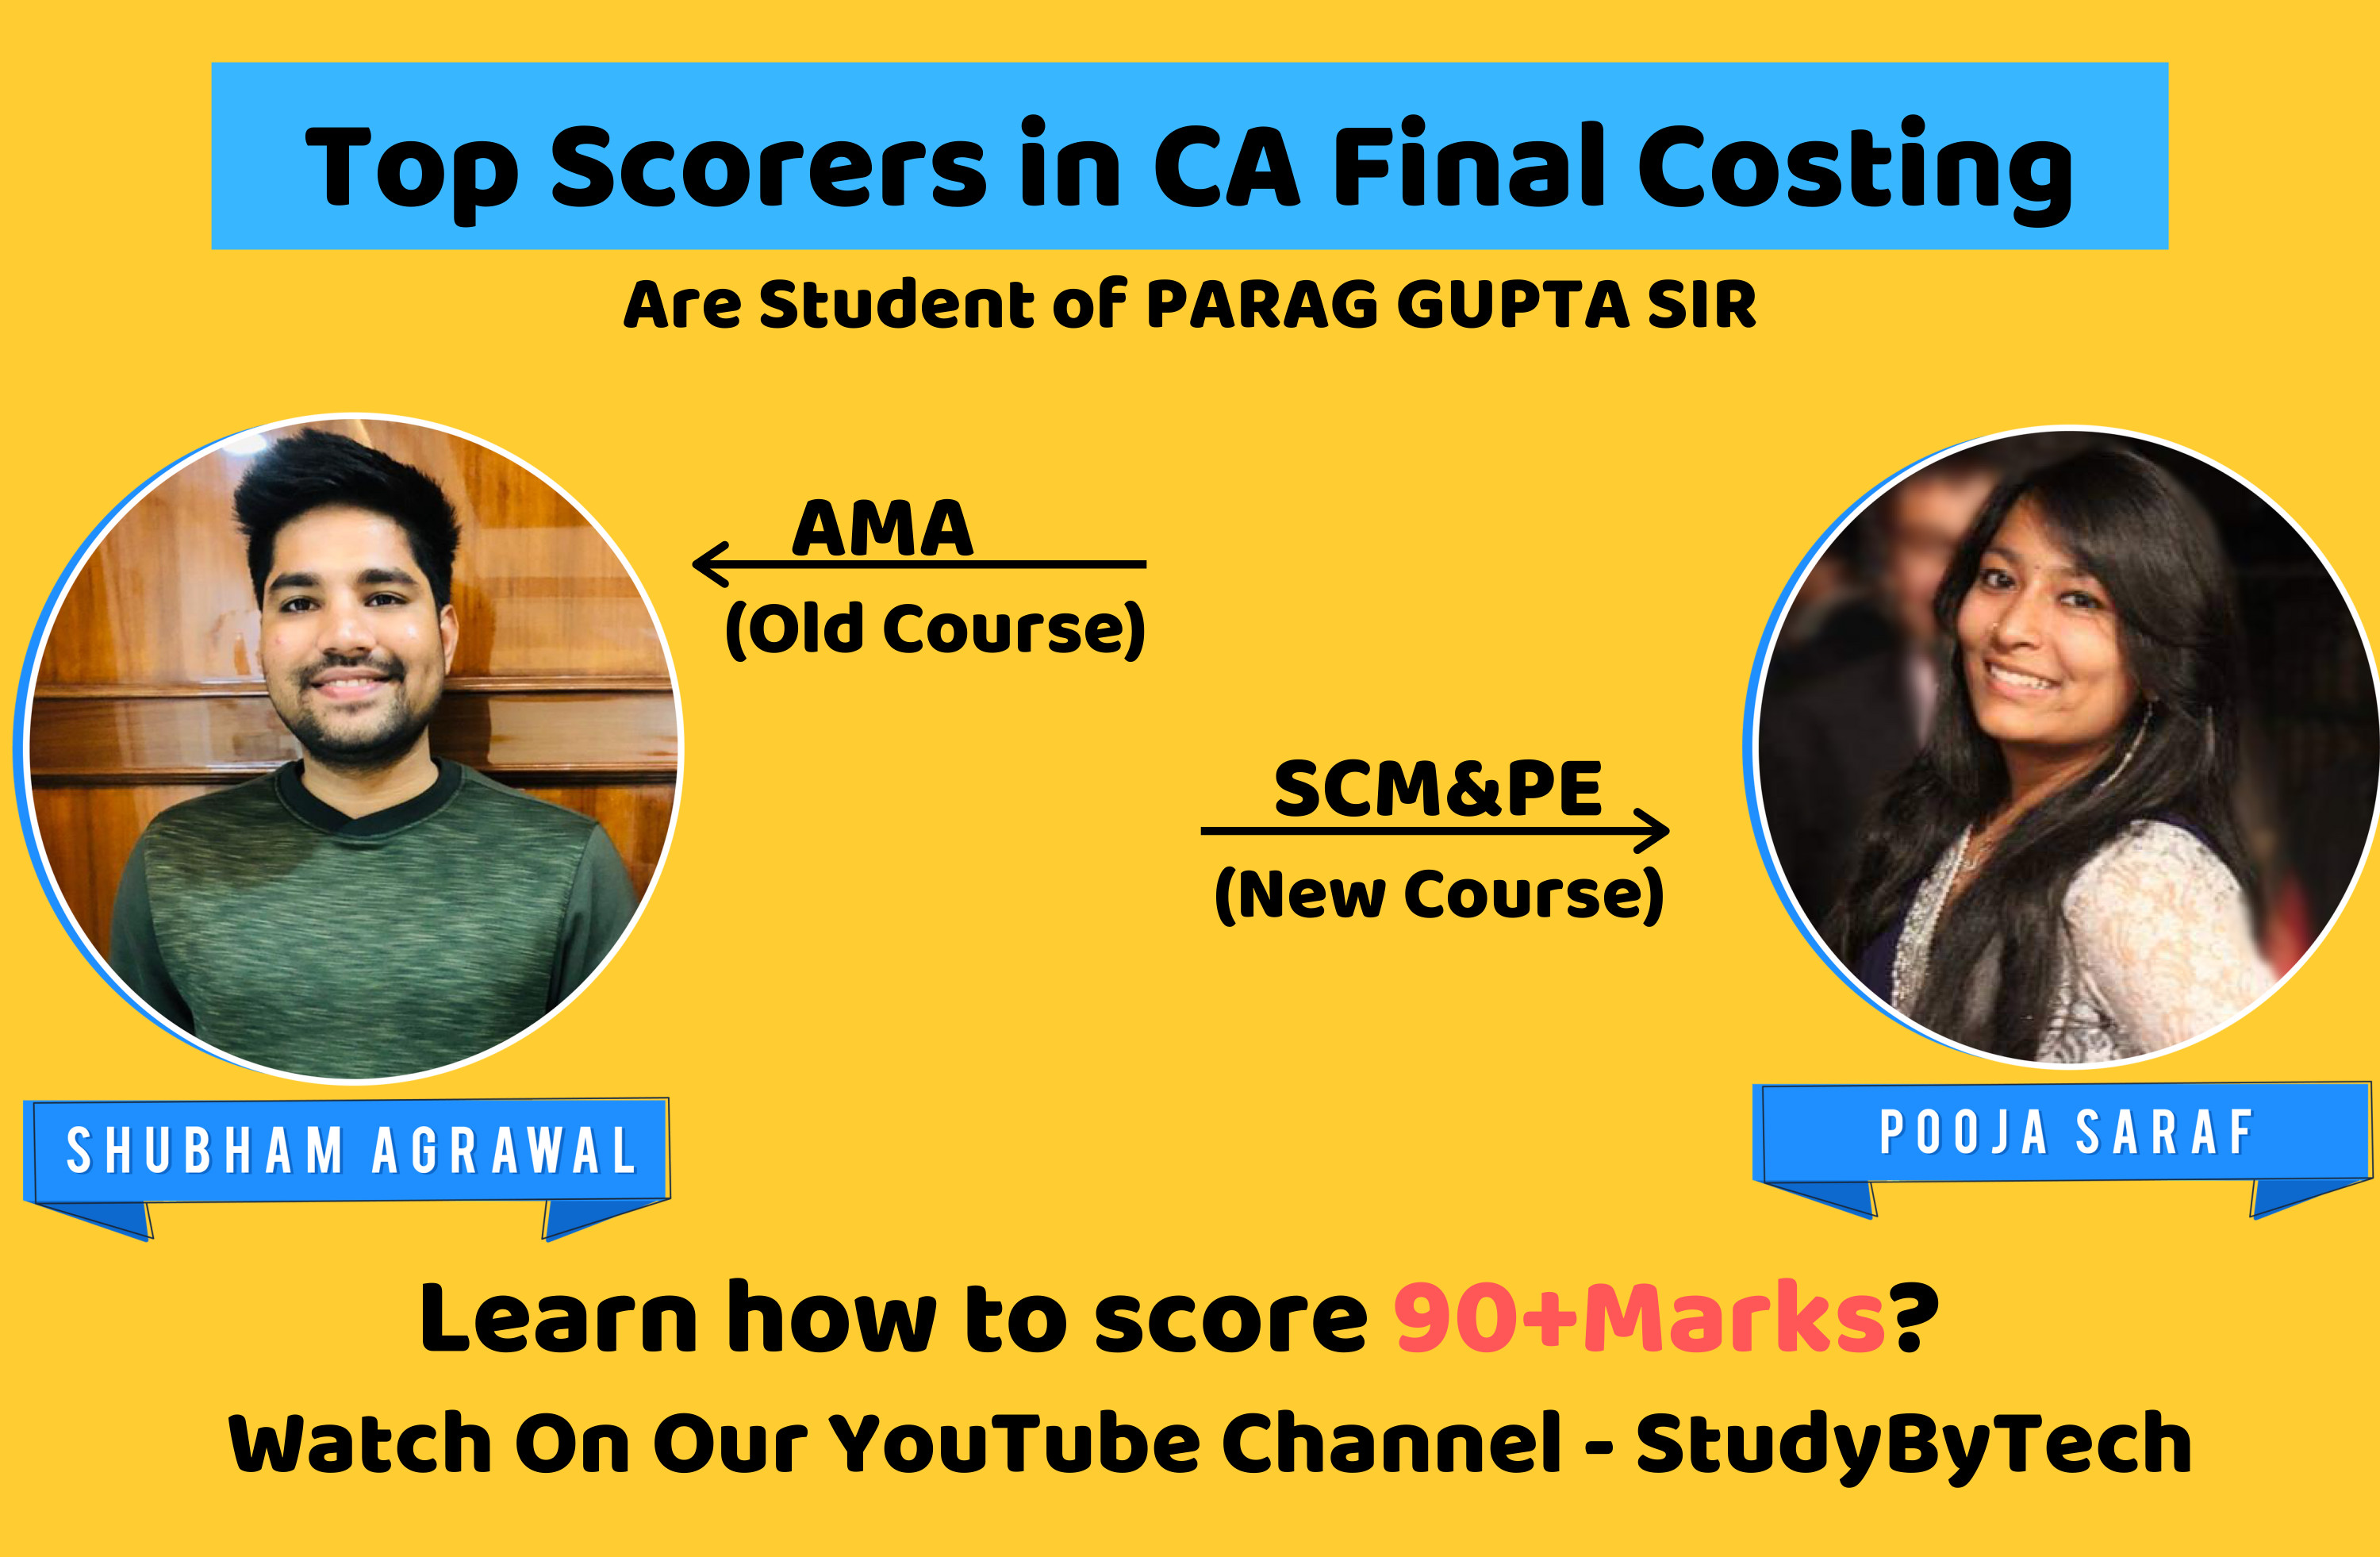 Top Scorers in CA Final Costing